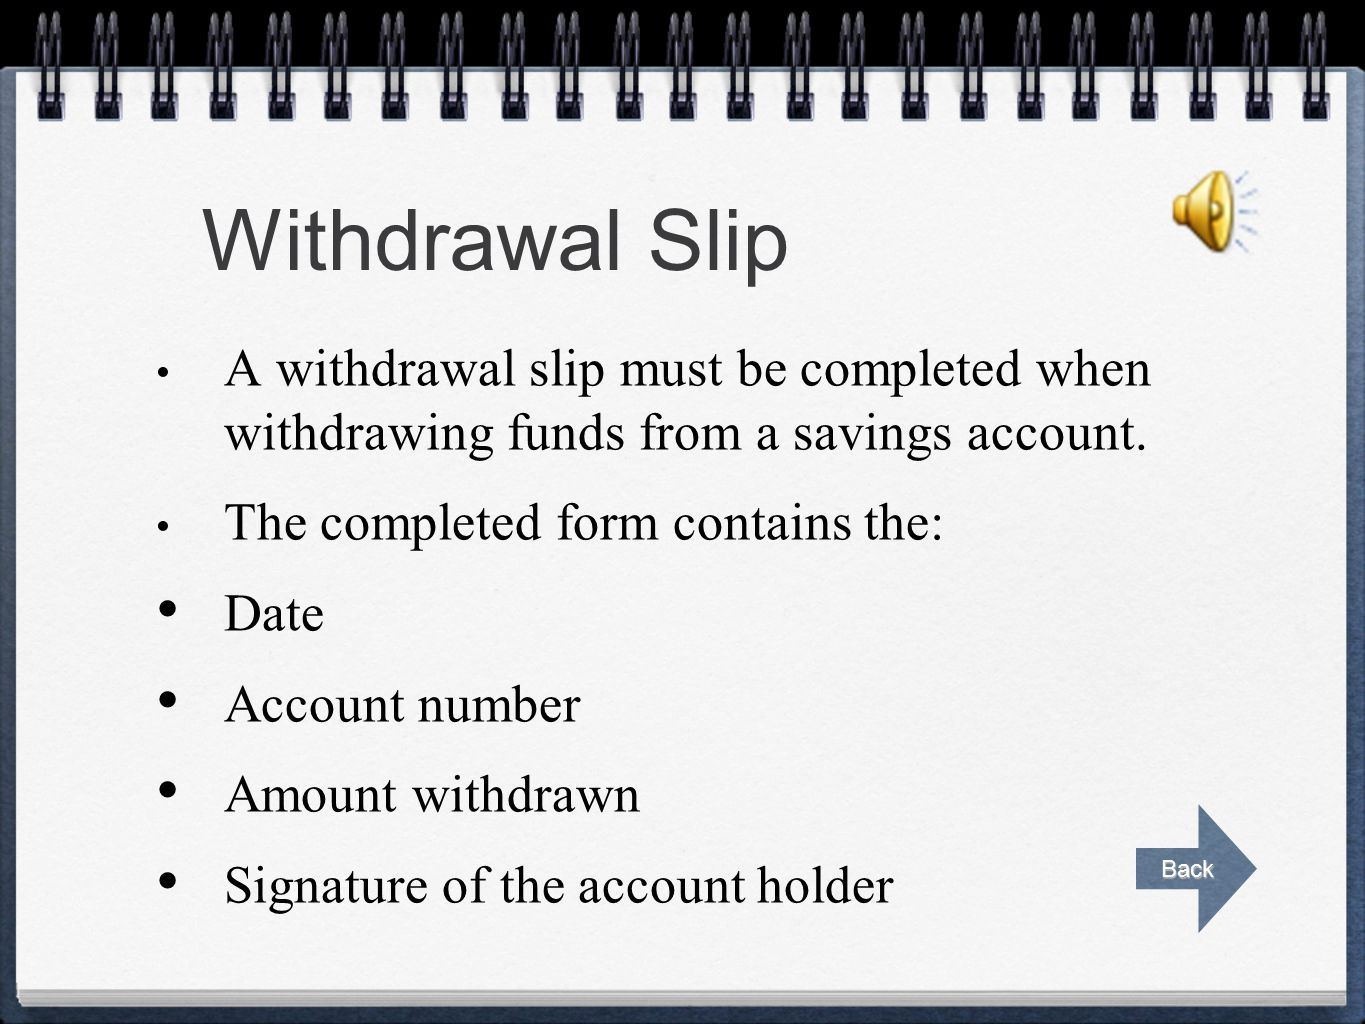 Withdrawal Slip A withdrawal slip must be completed when withdrawing funds from a savings account.